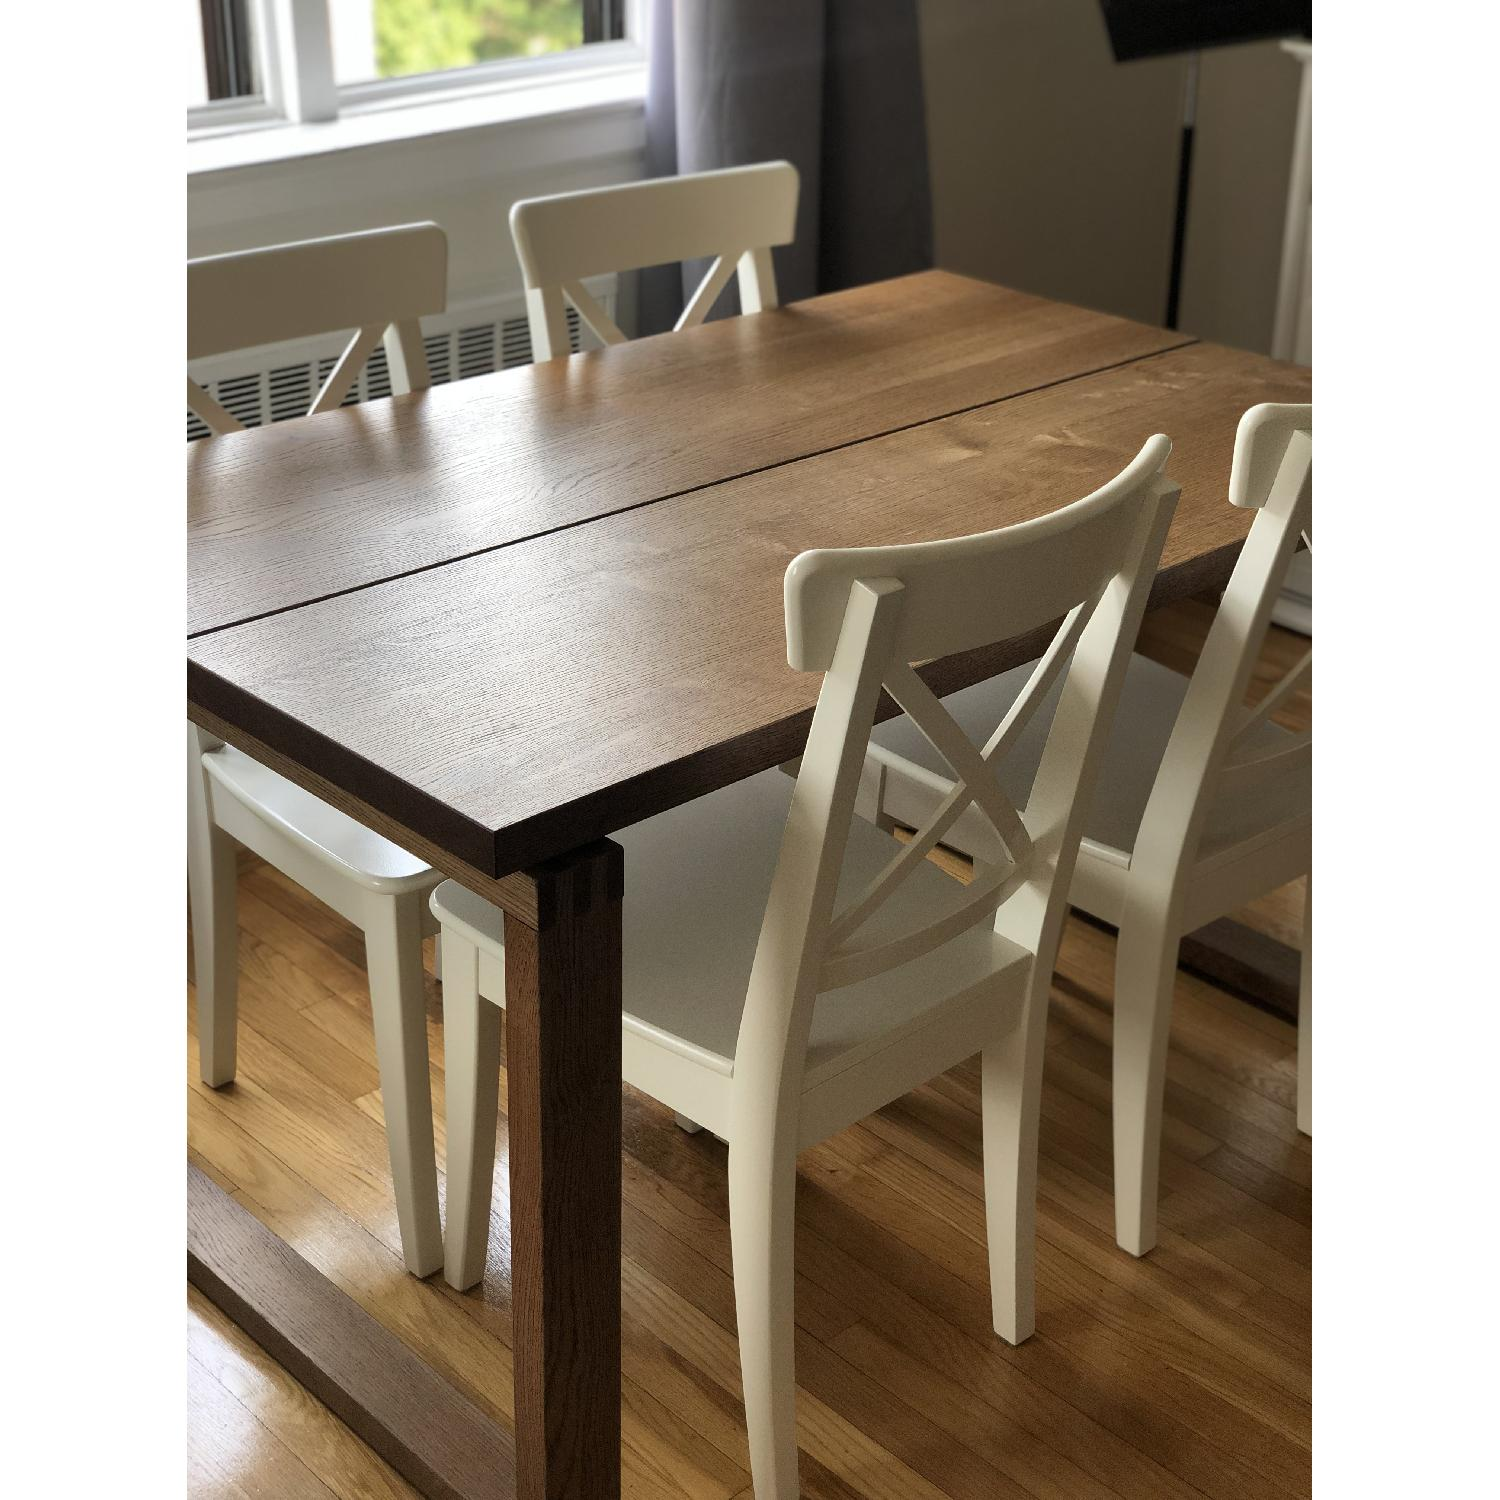 Ikea Ingolf White Dining Chairs - image-7